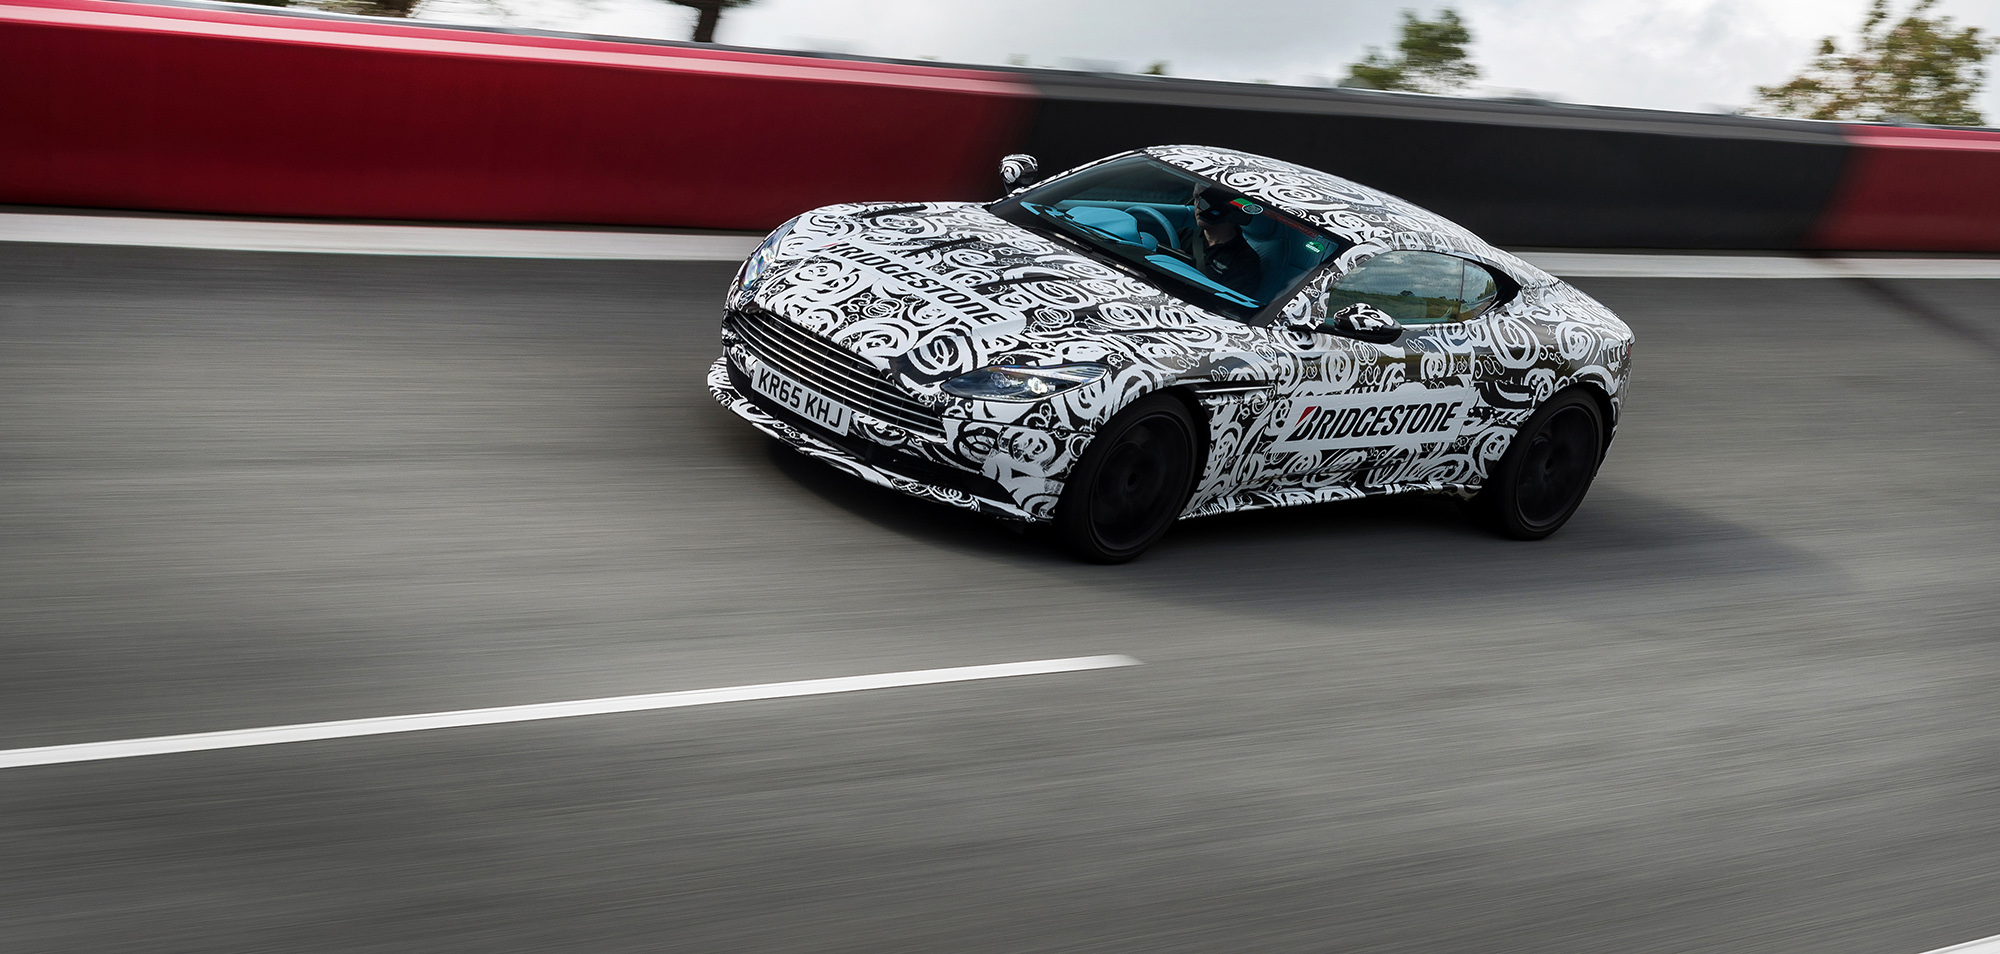 The promising Aston Martin DB11